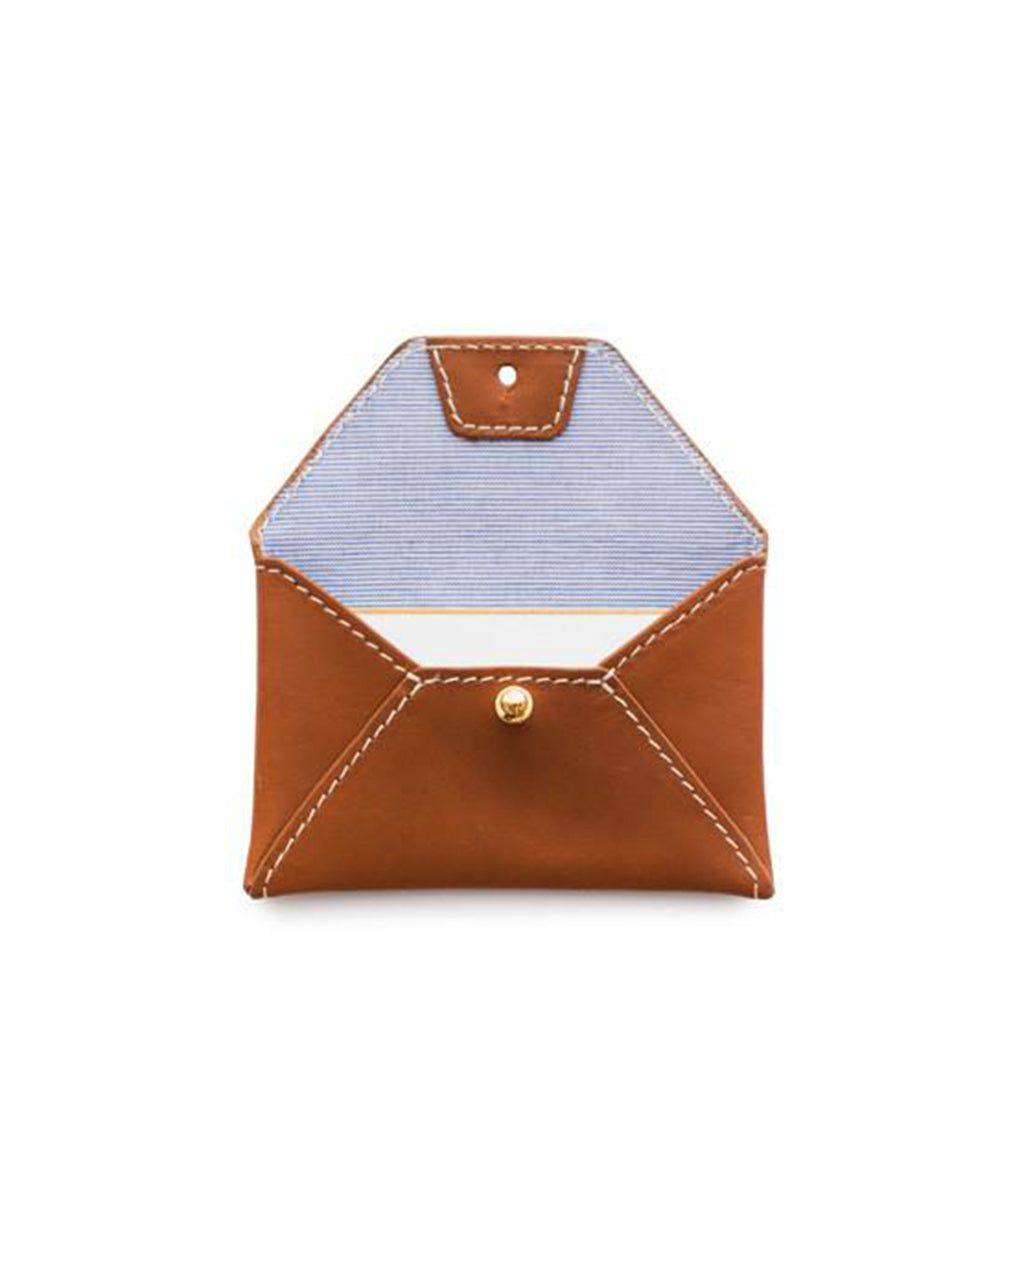 leather business card holder sugar paper - Leather Business Card Holder